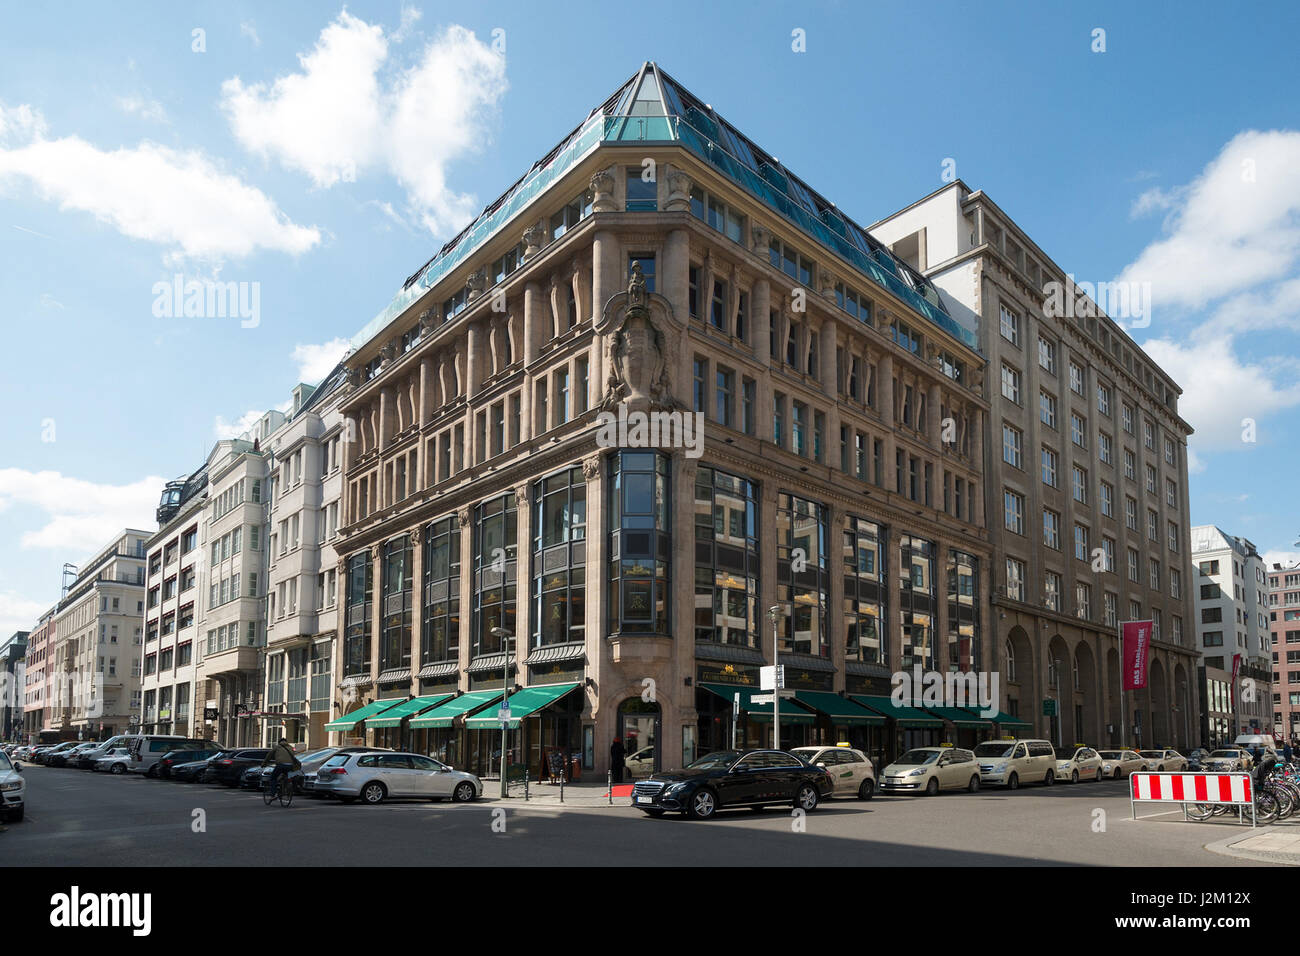 The family-run company Rausch house at gendarmenmarkt berlin since 1999 has been making delectable chocolates  since - Stock Image